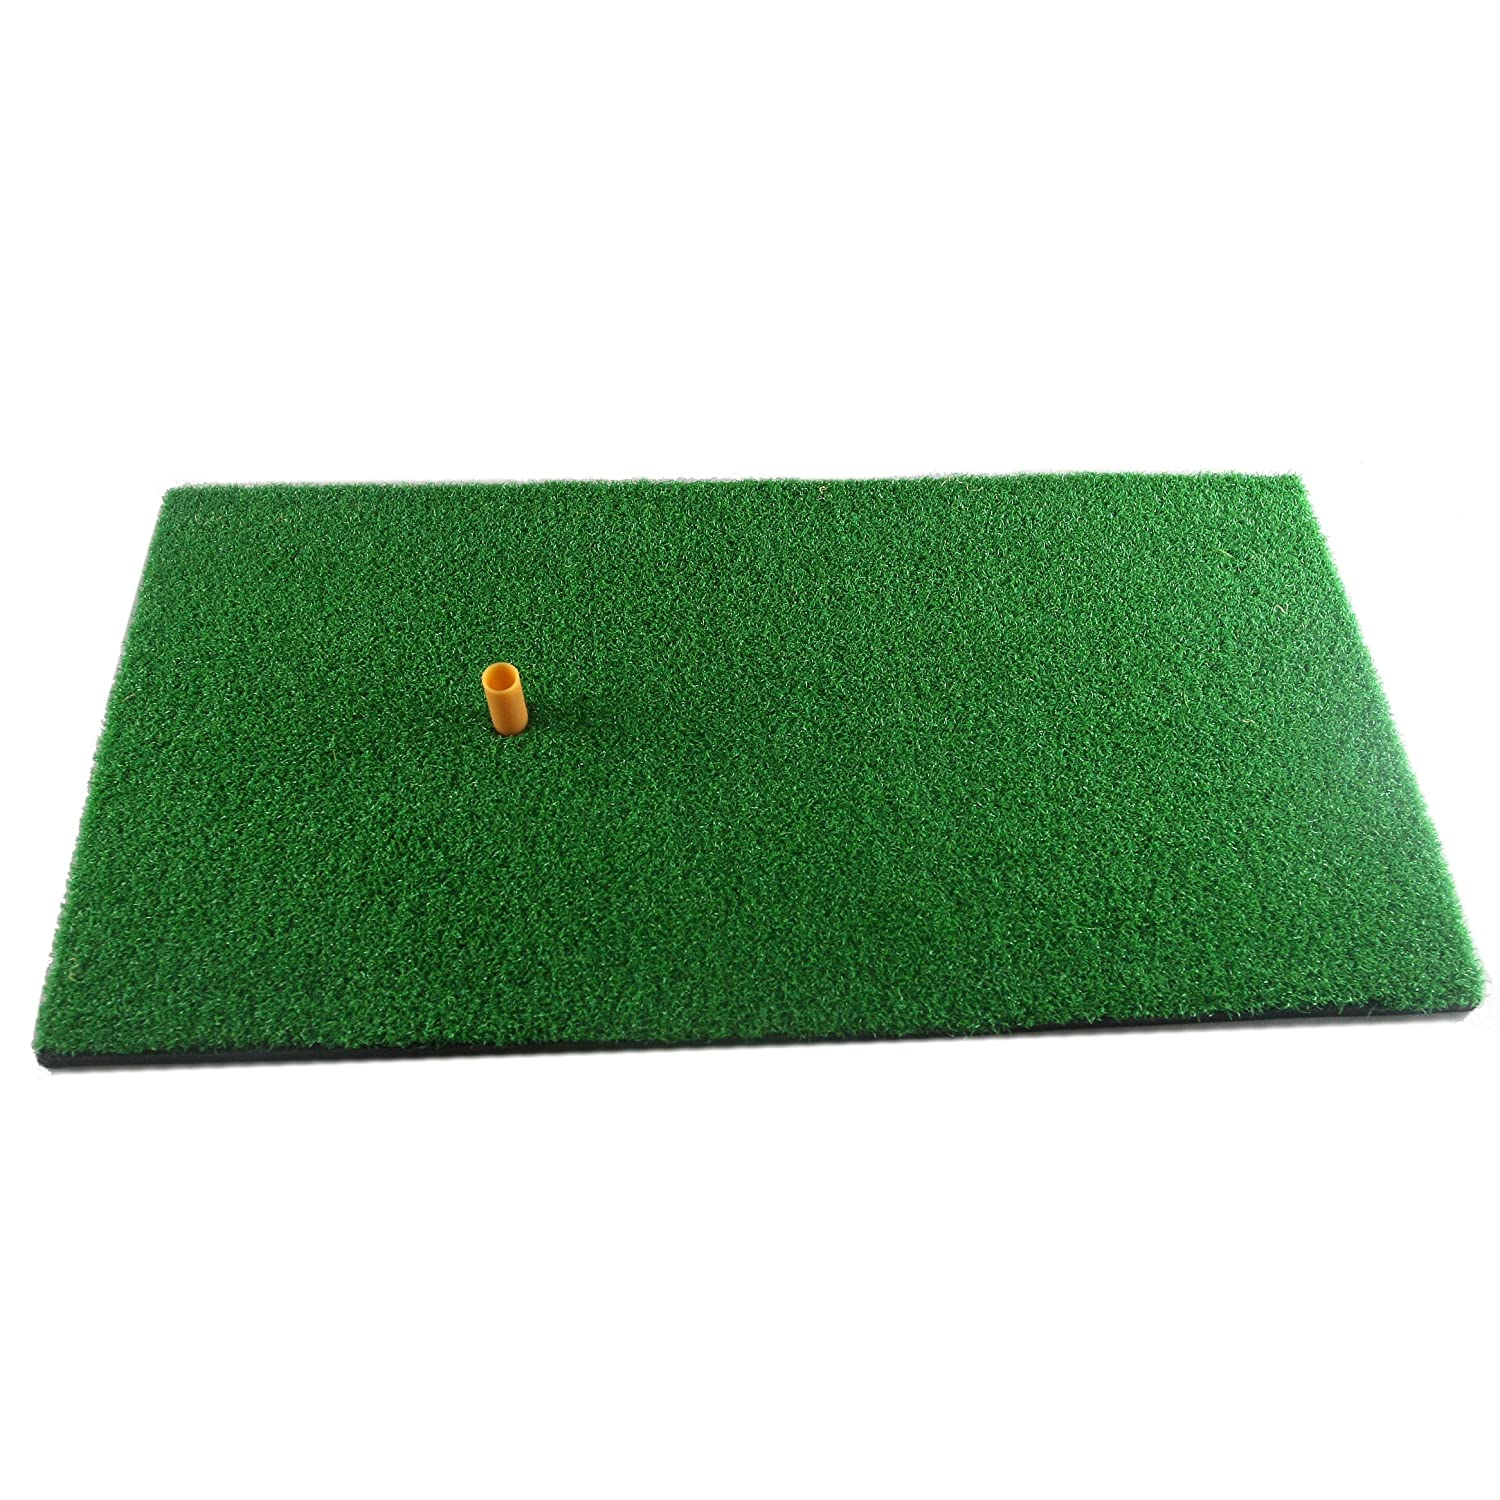 amazon com truedays golf mat 12 u0027 u0027x 24 u0027 u0027 residential practice